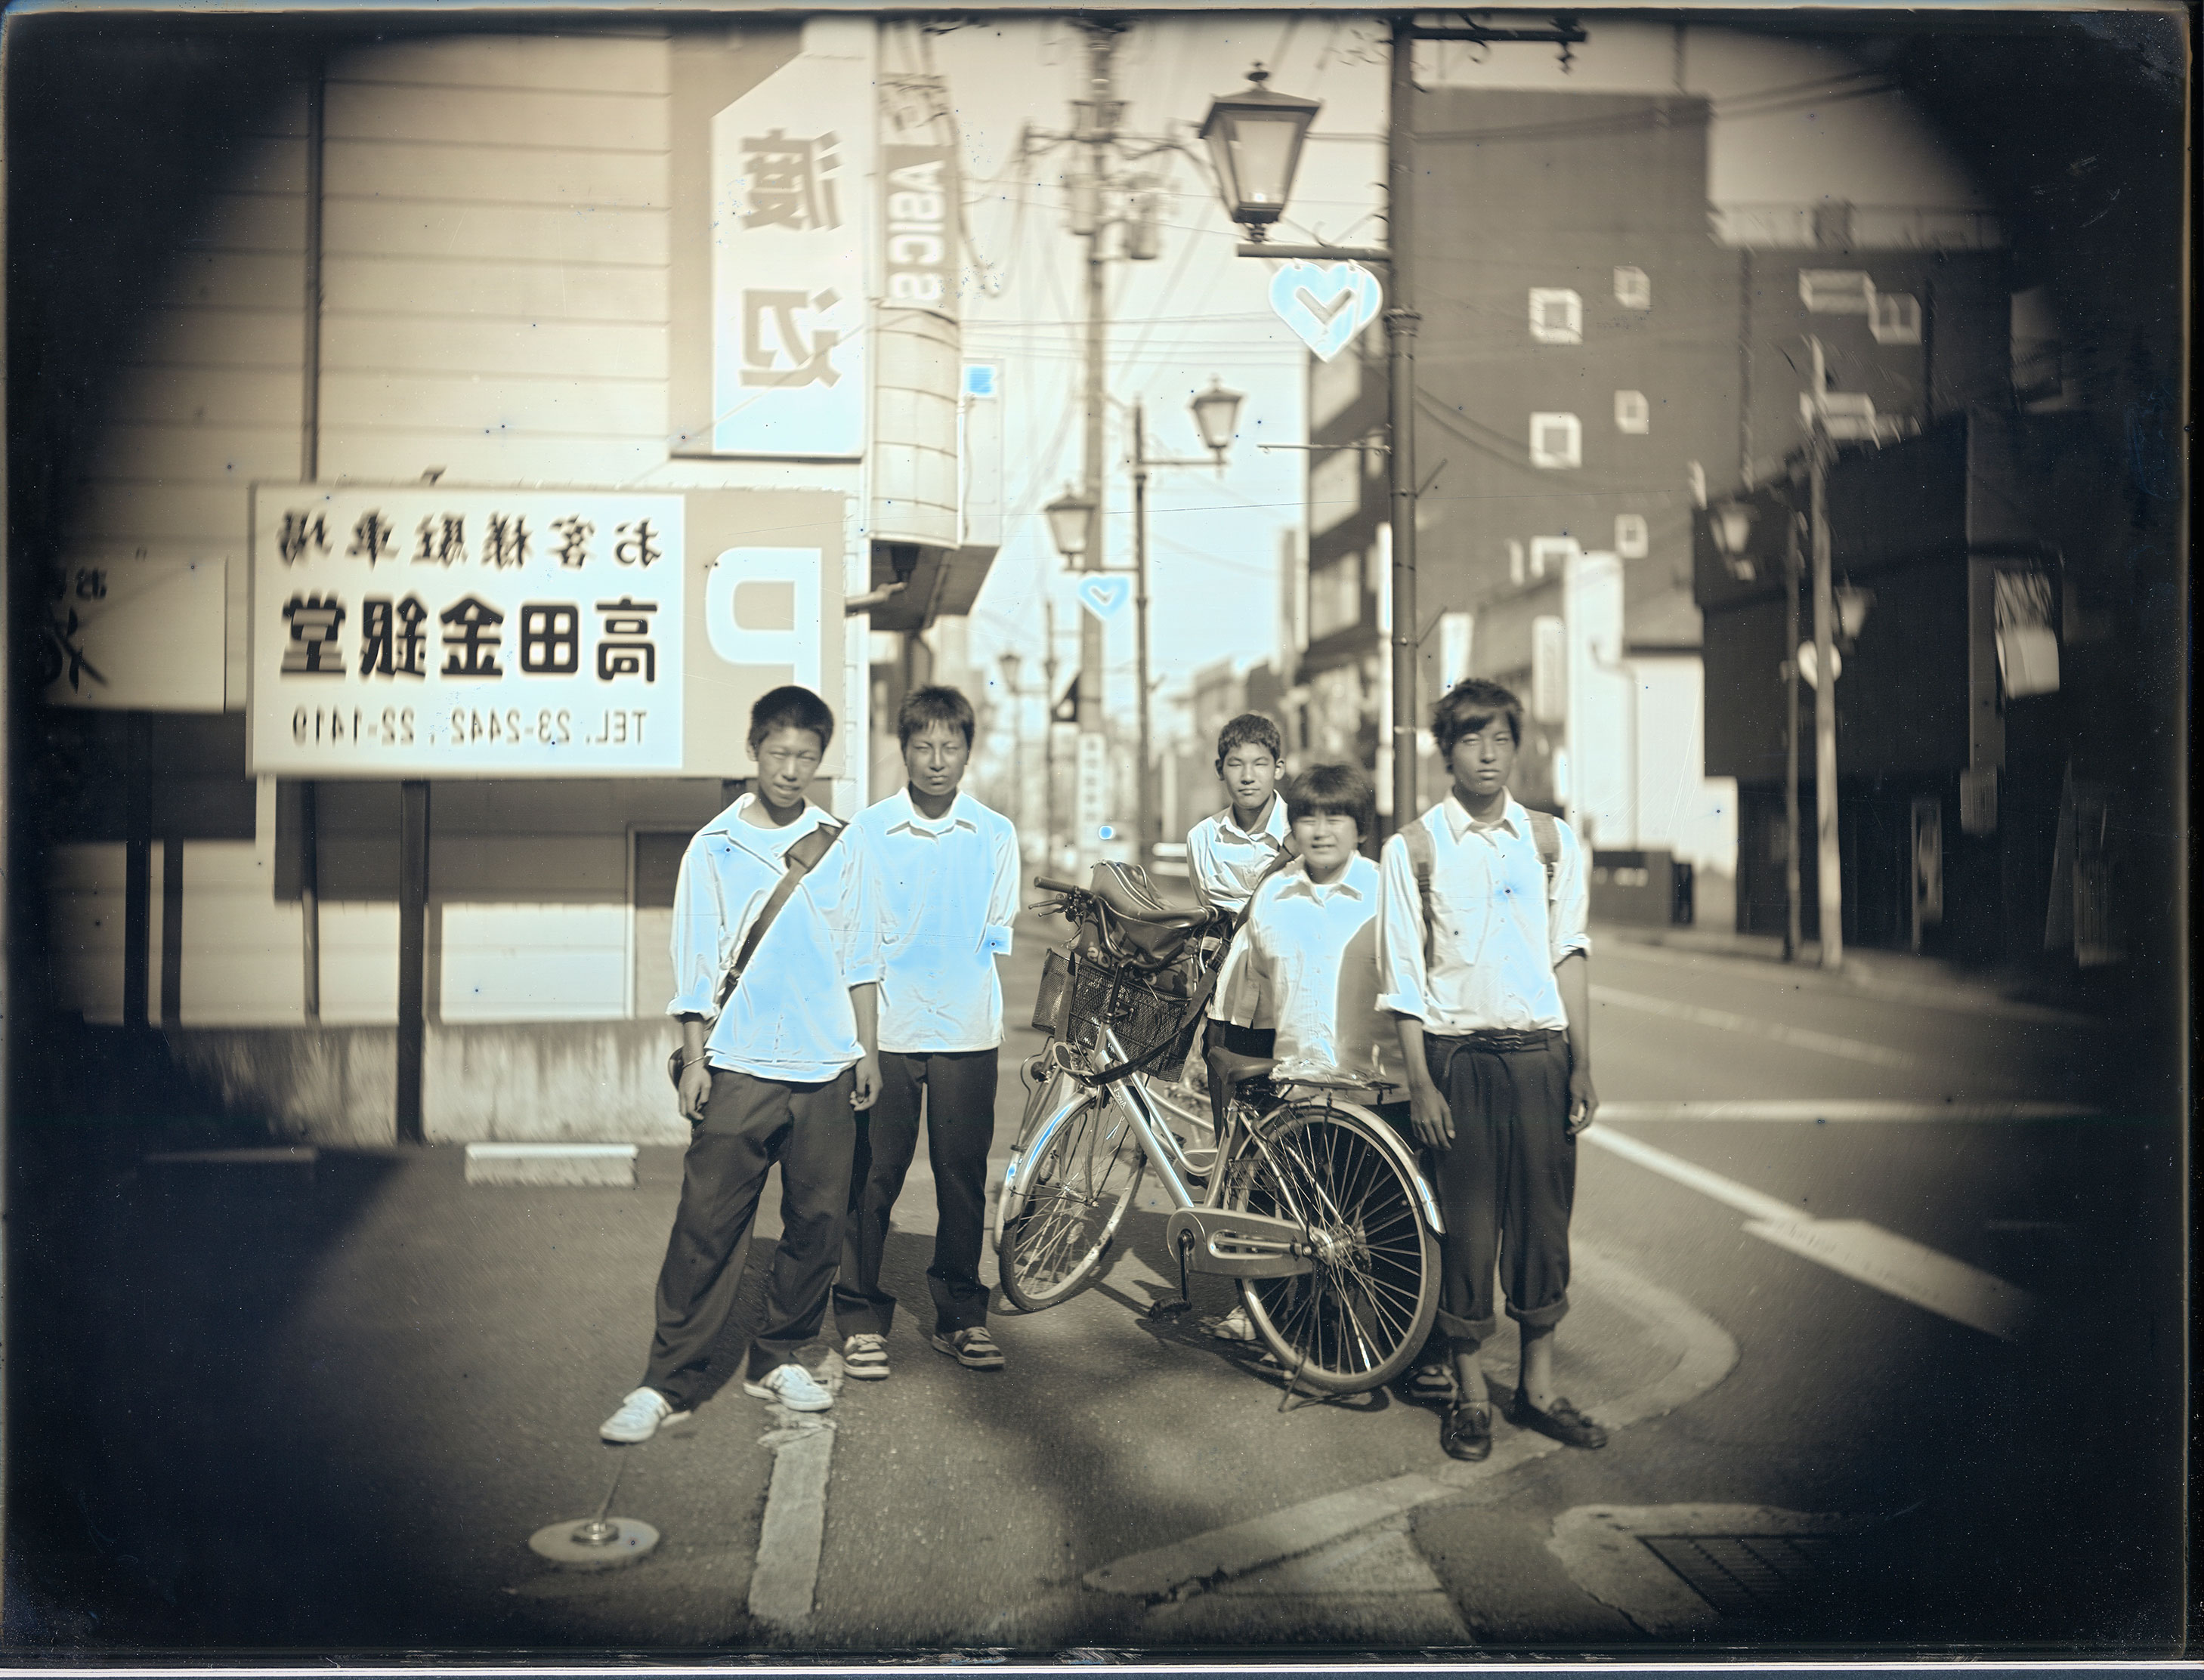 2012年6月26日、下校中の高校生、南相馬市原町 June 26, 2012. High school students on their way home, Haranomachi, Minamisoma